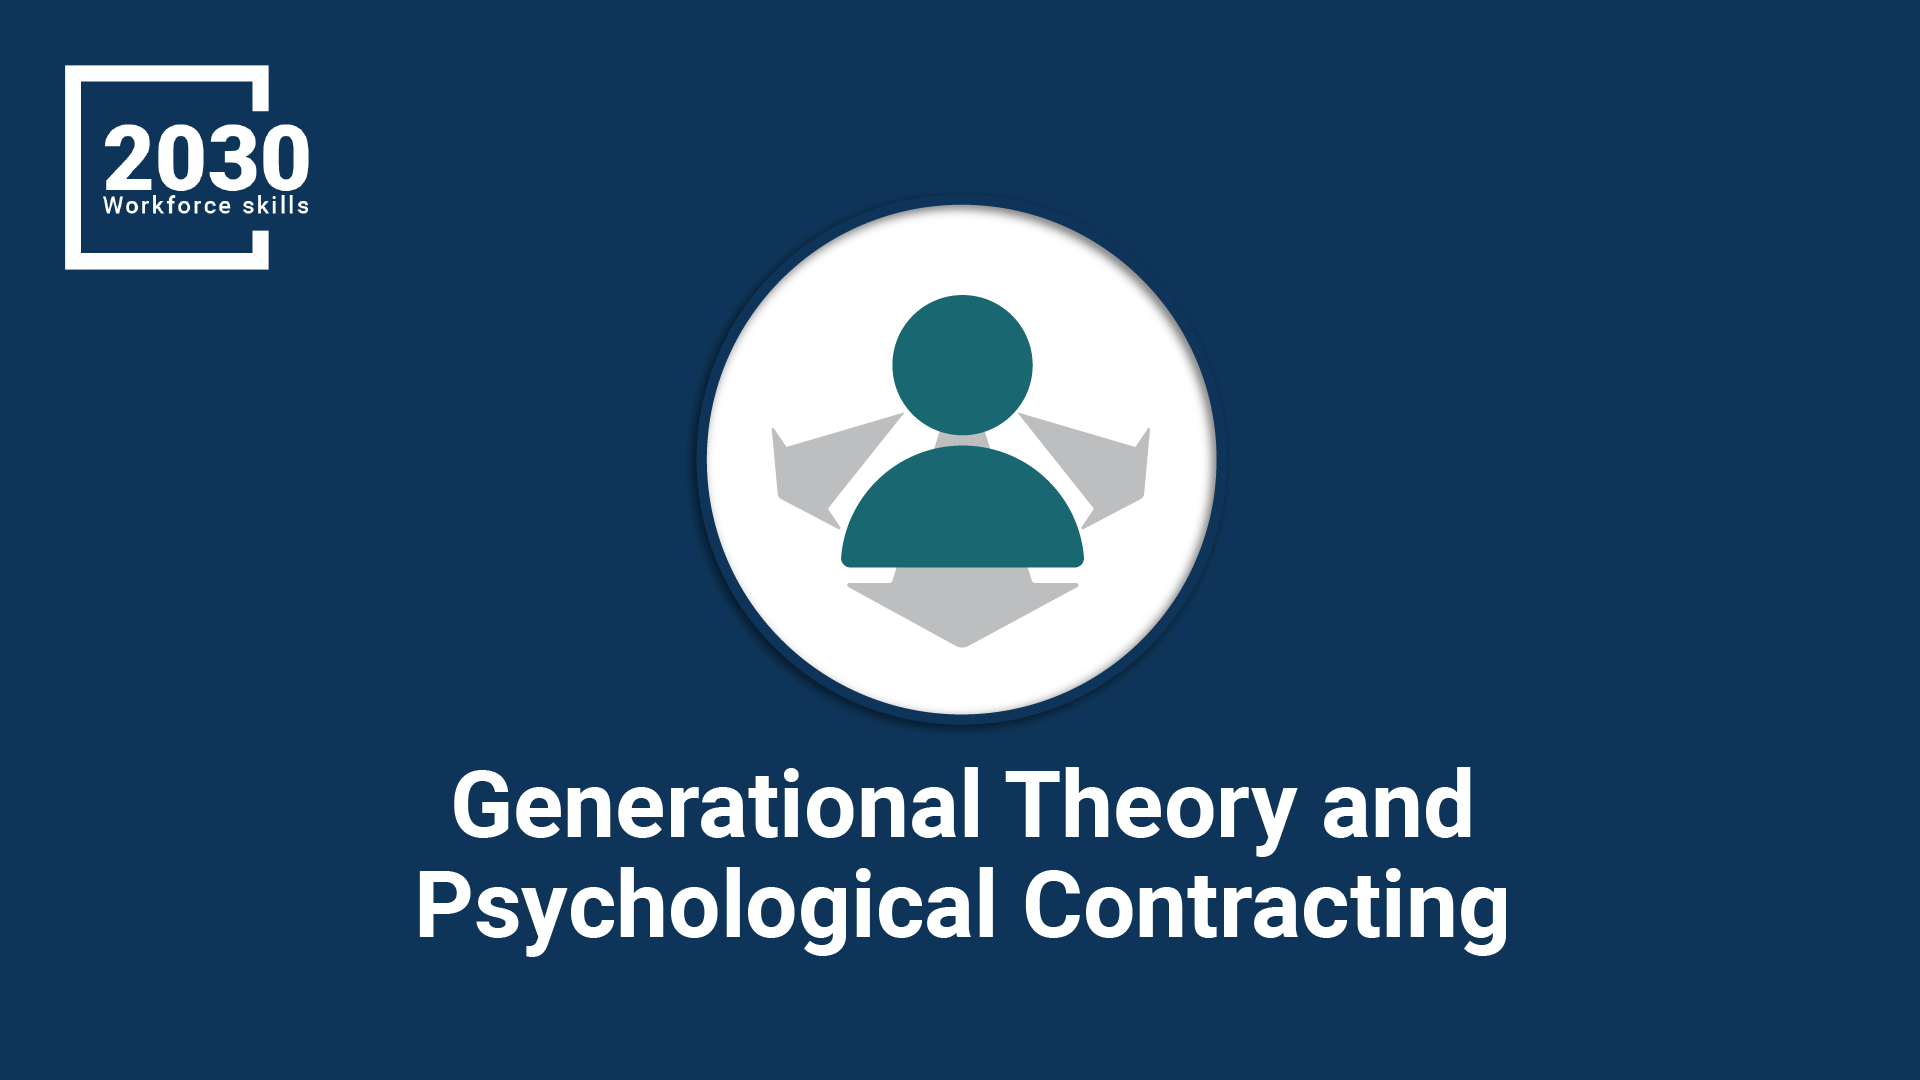 Generational Theory and Psychological Contracting